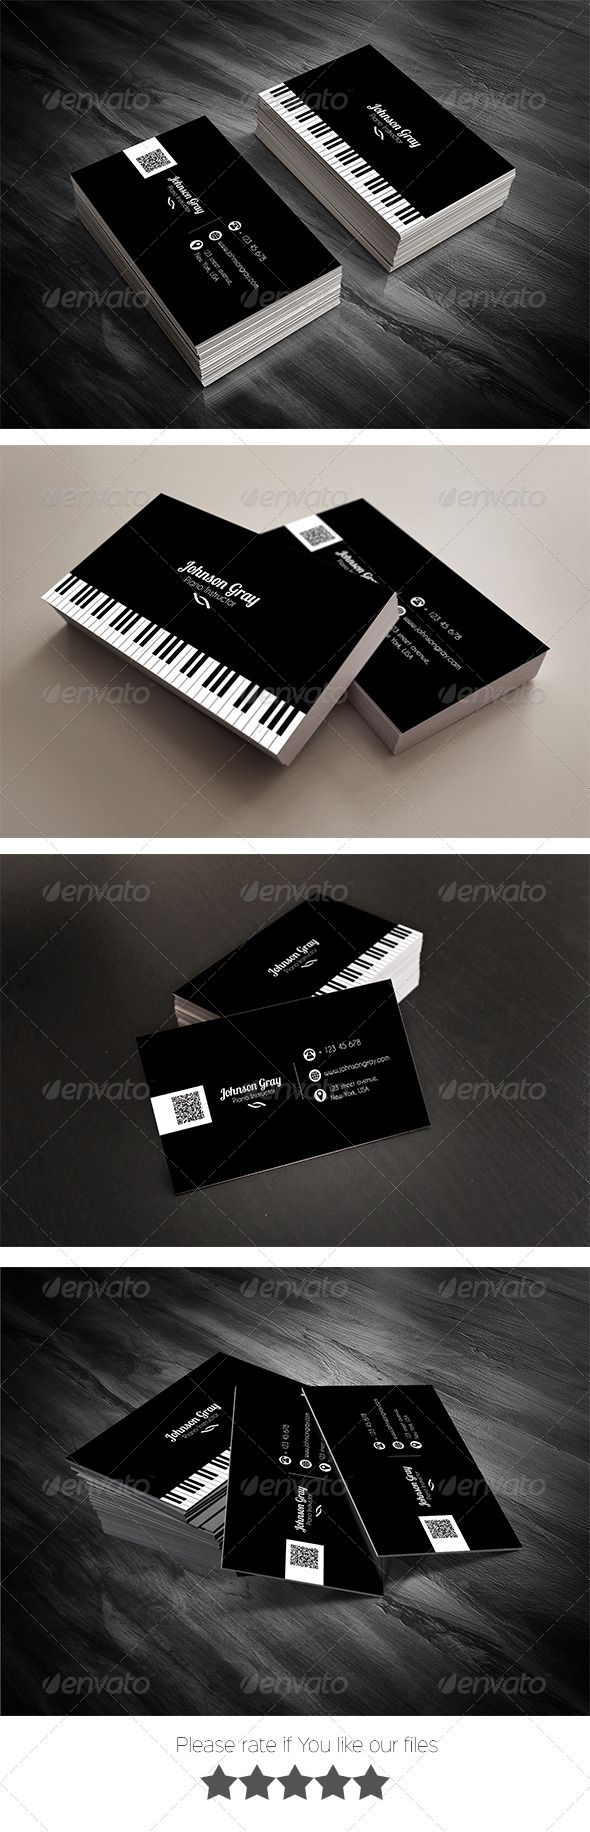 Musician Business Card | Card templates, Business cards and Musicians